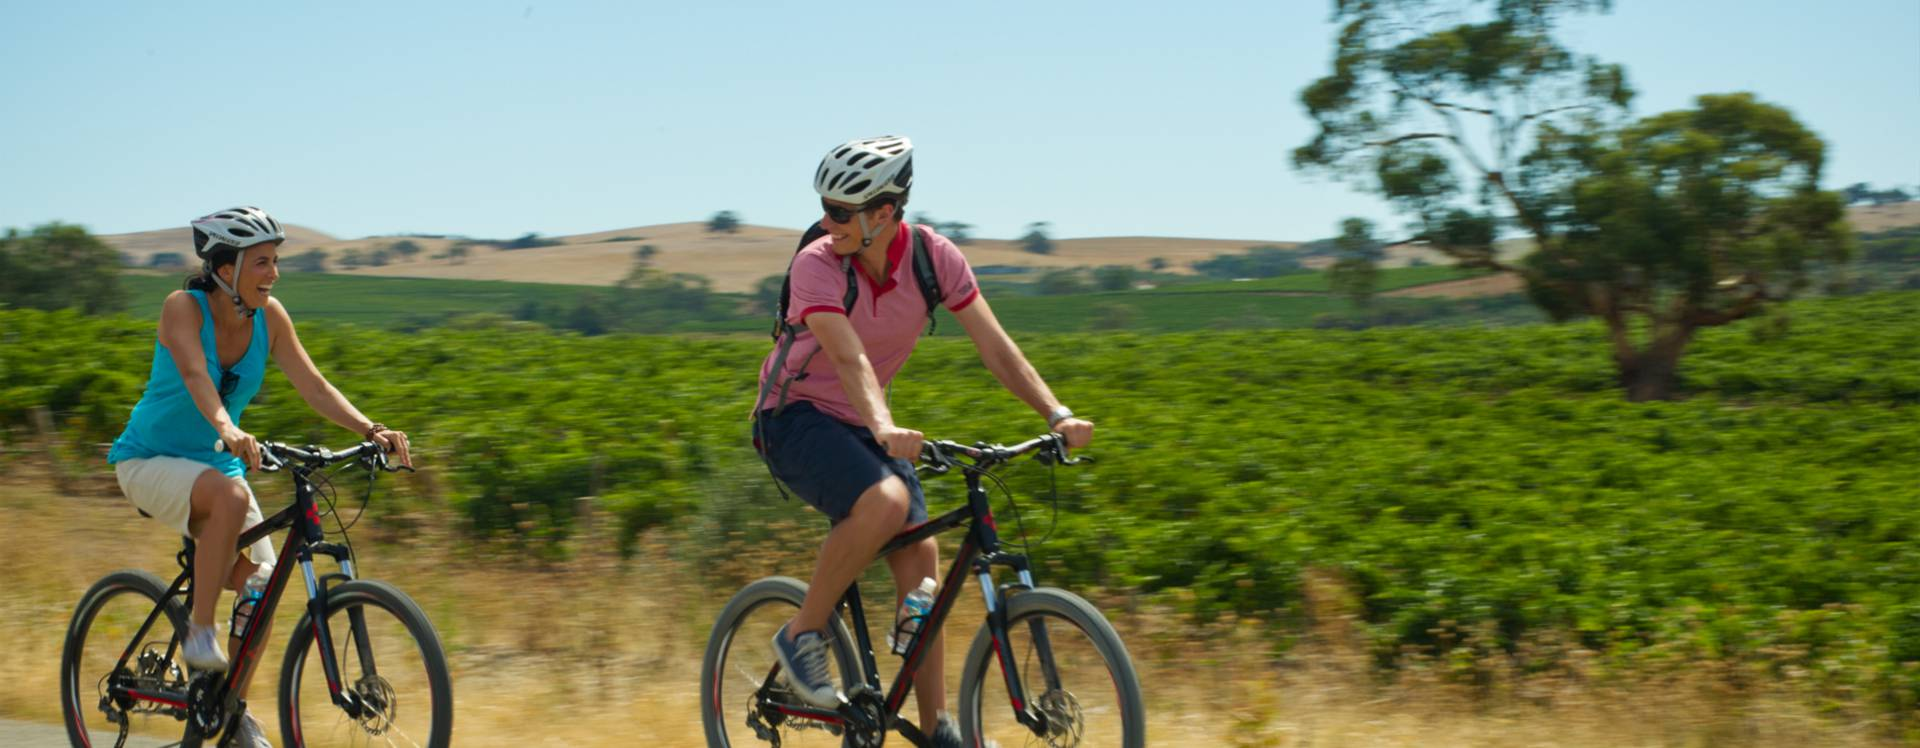 clare-valley-experiences-home-riesling-trail-bikes